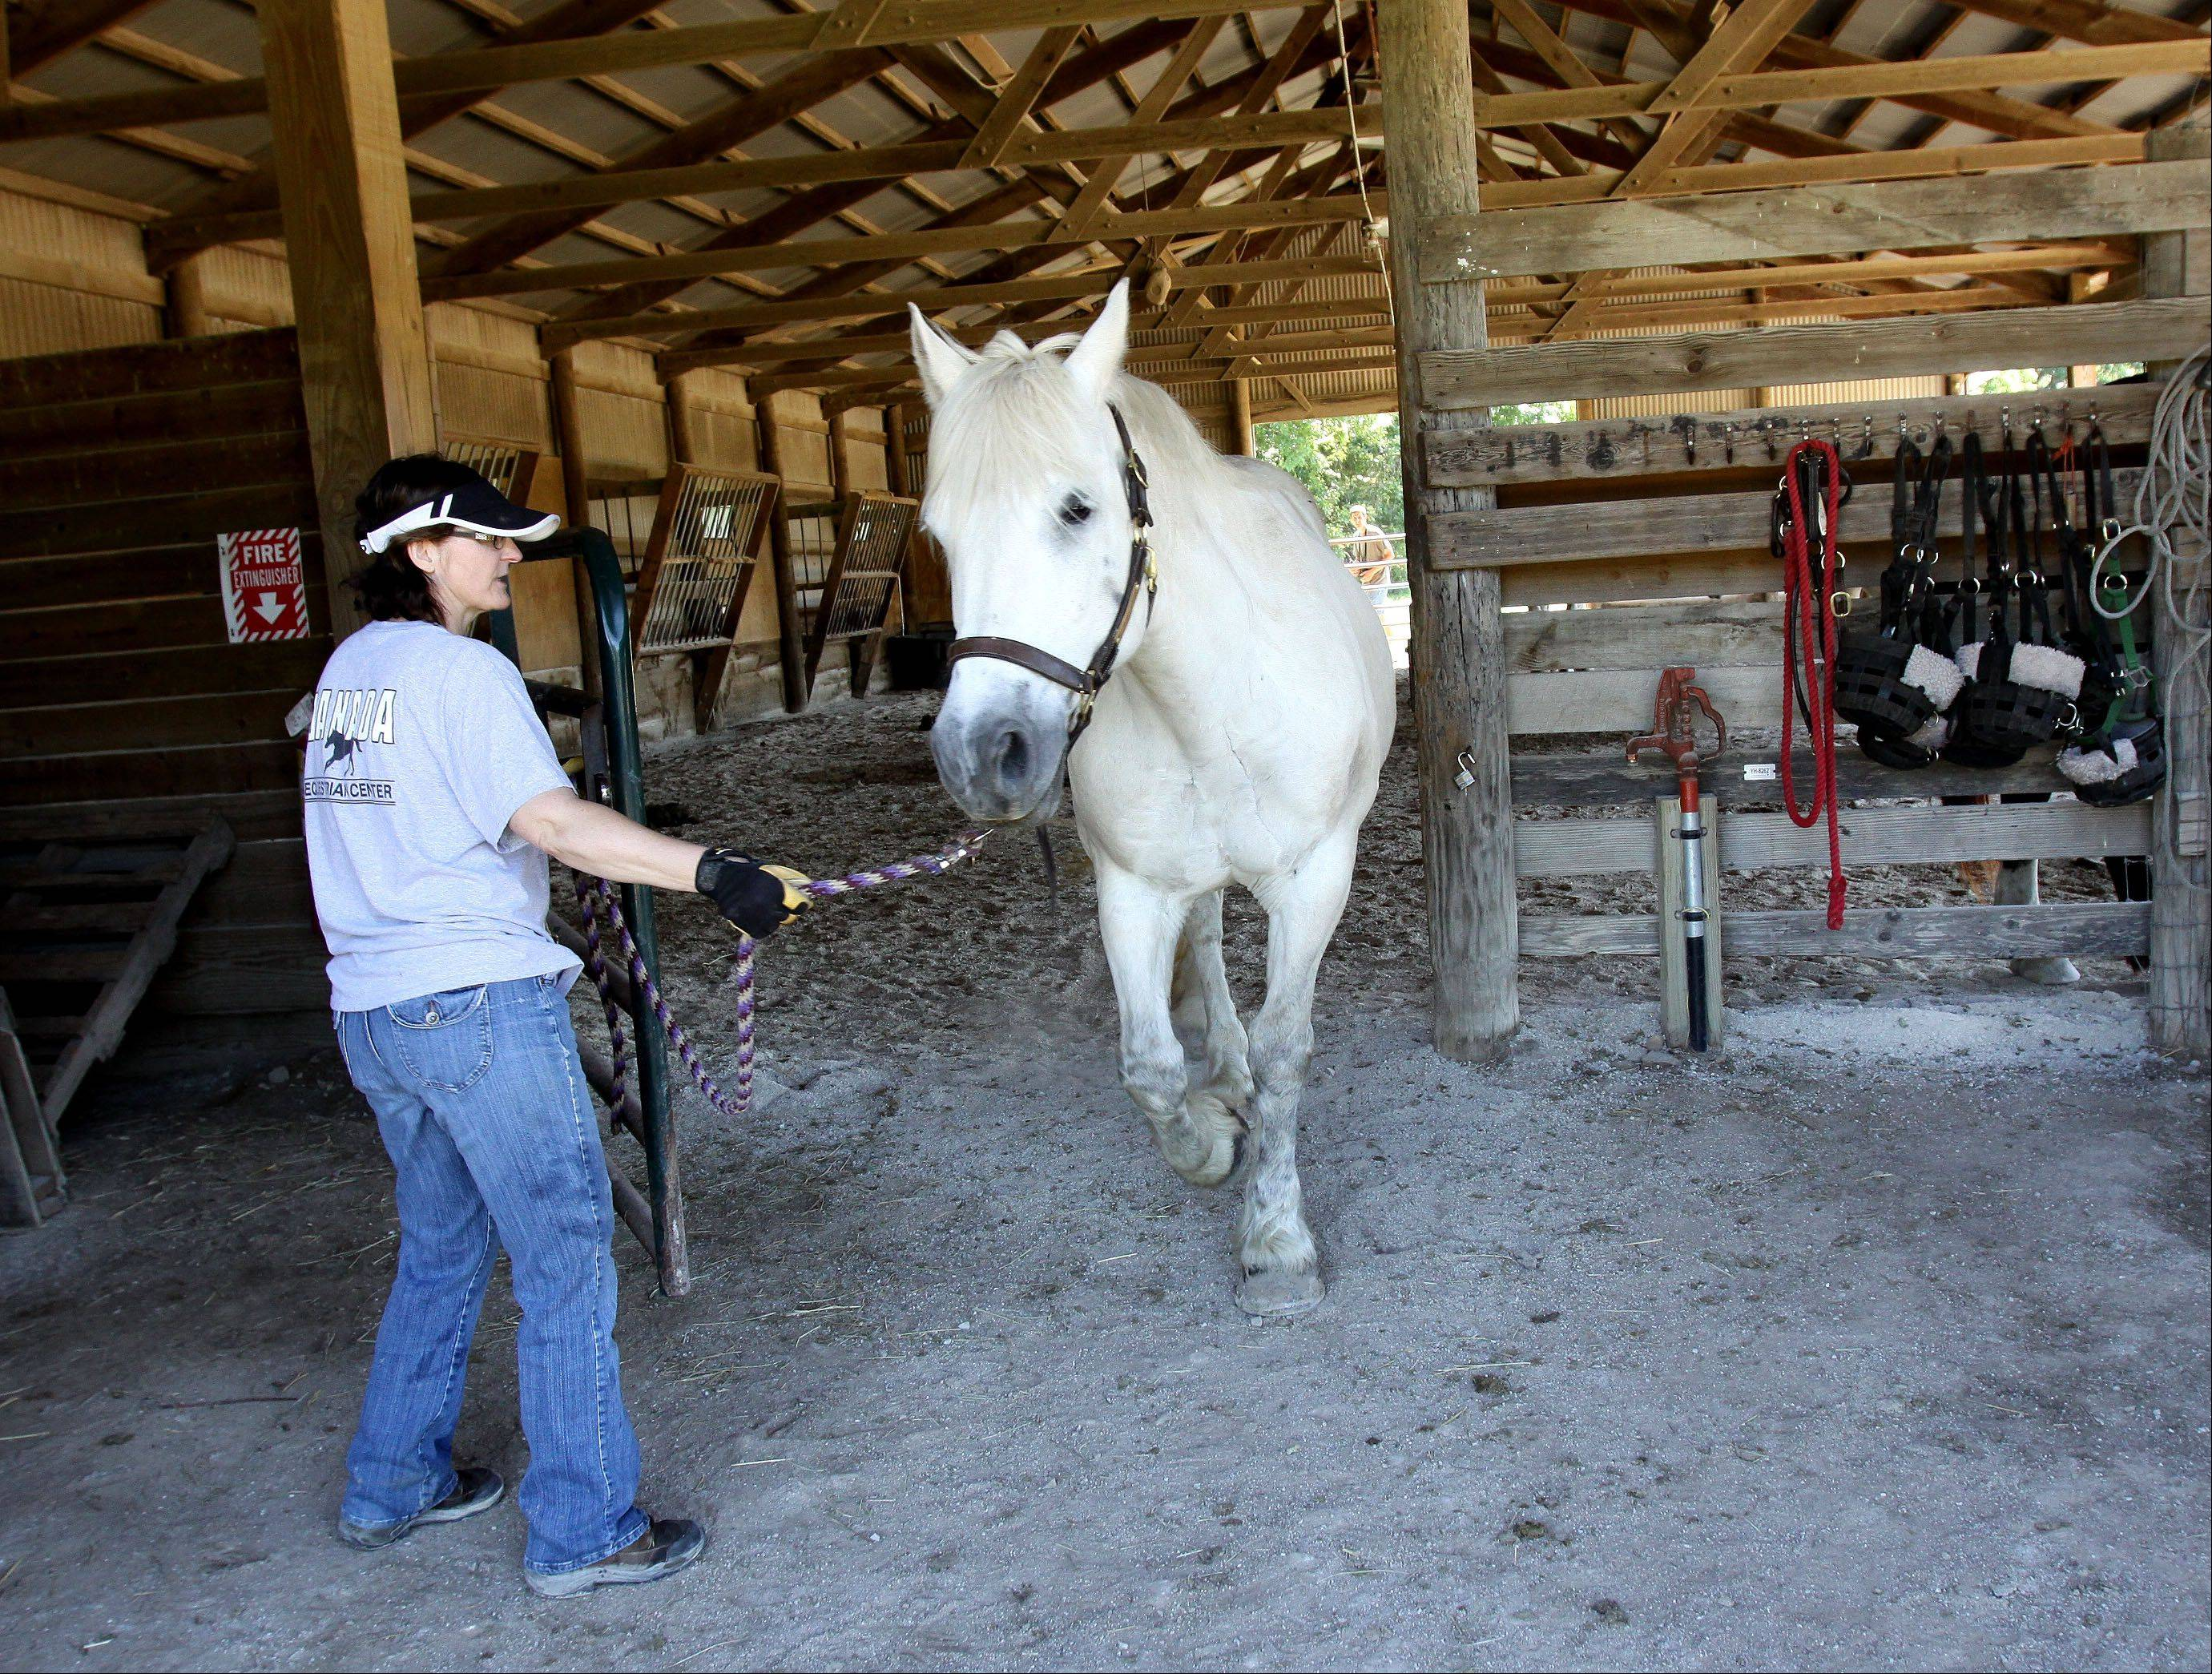 Volunteer Gail Sieve of Lisle brings Shasta out of one of the barns at Danada Equestrian Center in Wheaton. A recent investigation of the center found no signs of abuse or neglect of the horses.